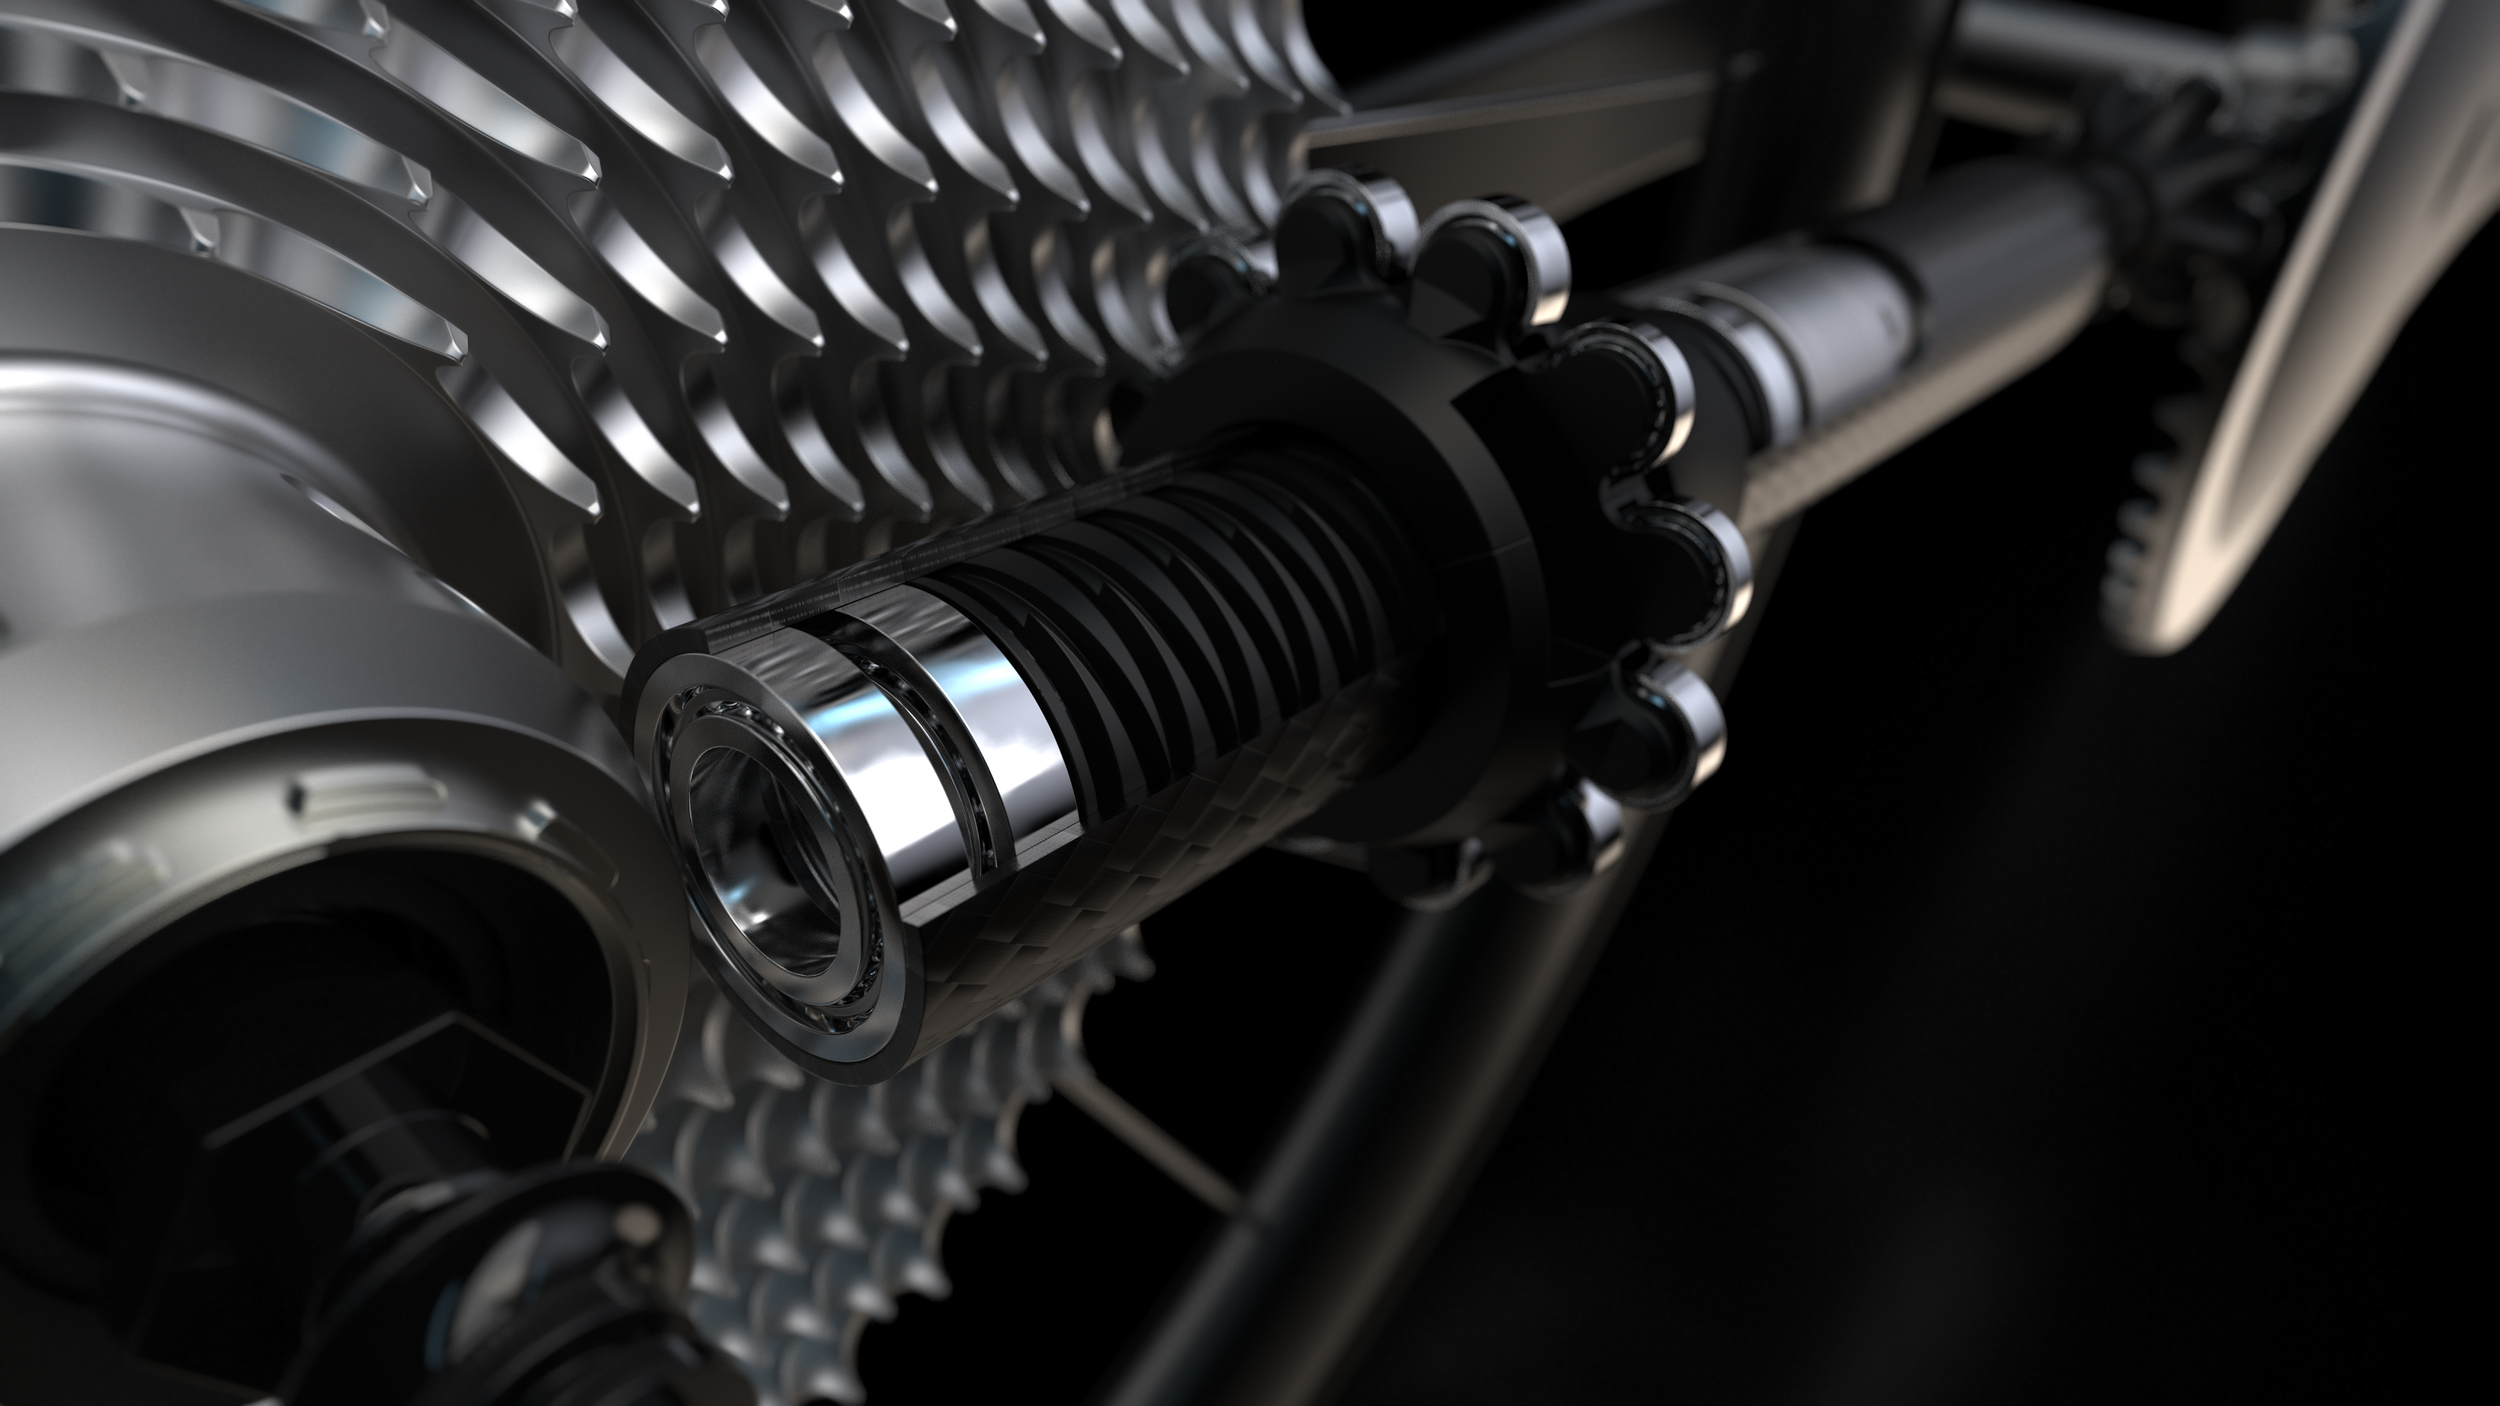 Detail of CeramicSpeed Driven drivetrain, showing internal mechanisms of rear pinion.